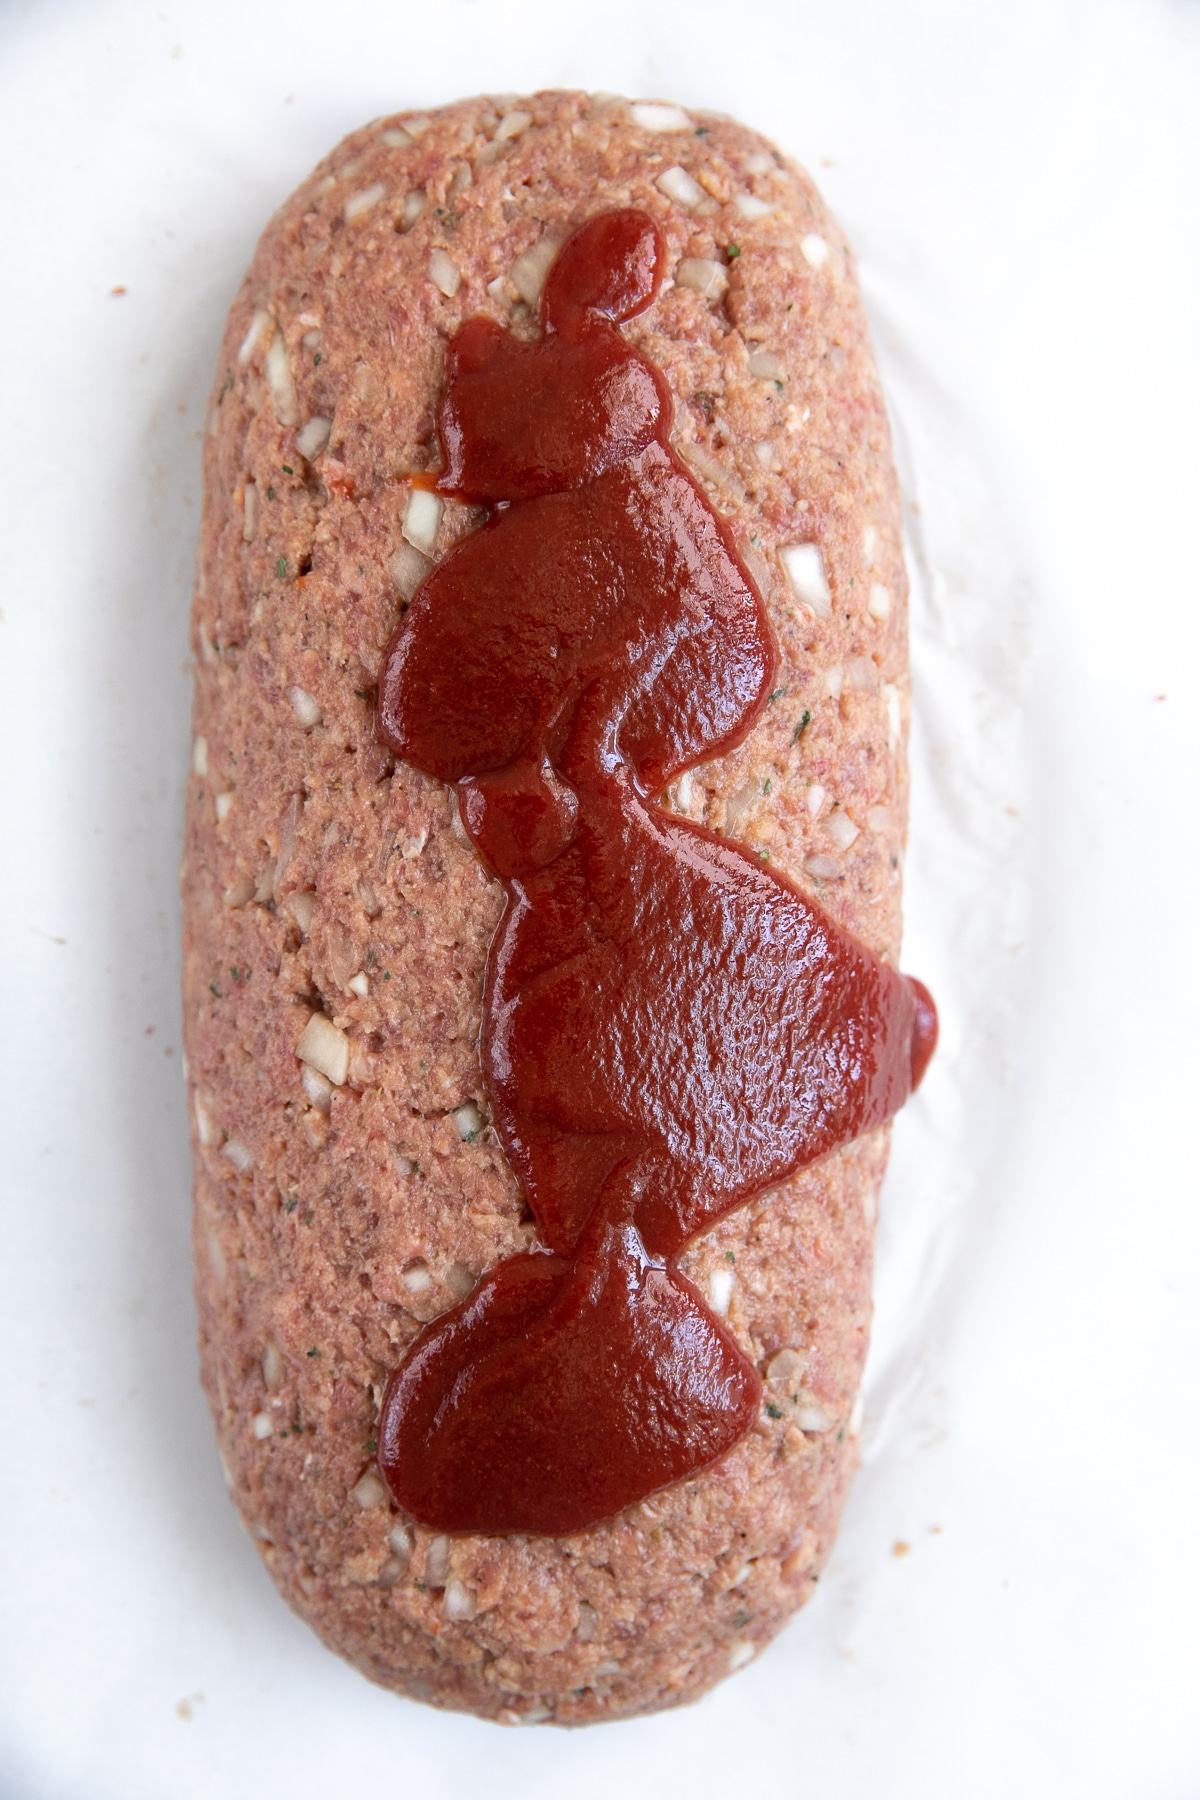 Unbaked beef meatloaf on a large parchment paper lined baking sheet topped with homemade ketchup sauce.